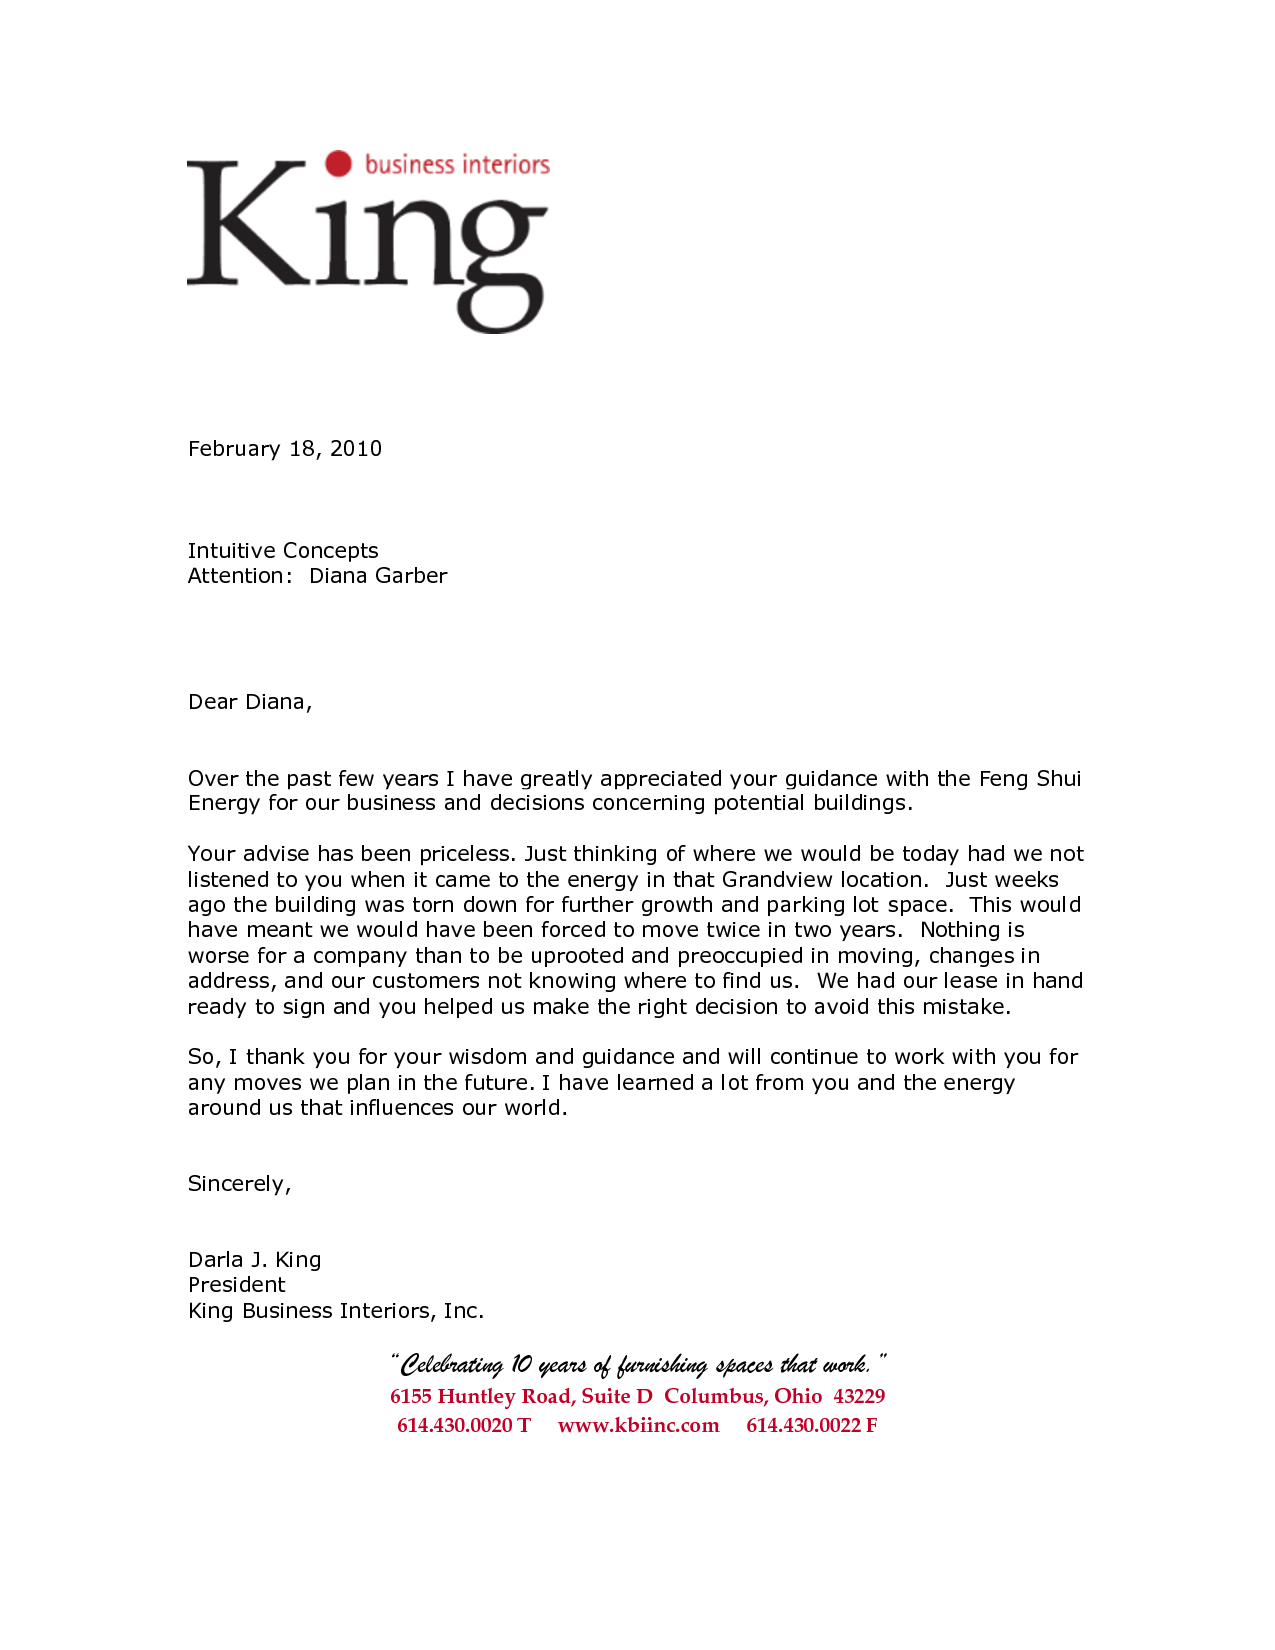 Business letter of reference template king business for Recommendation letter for a company template